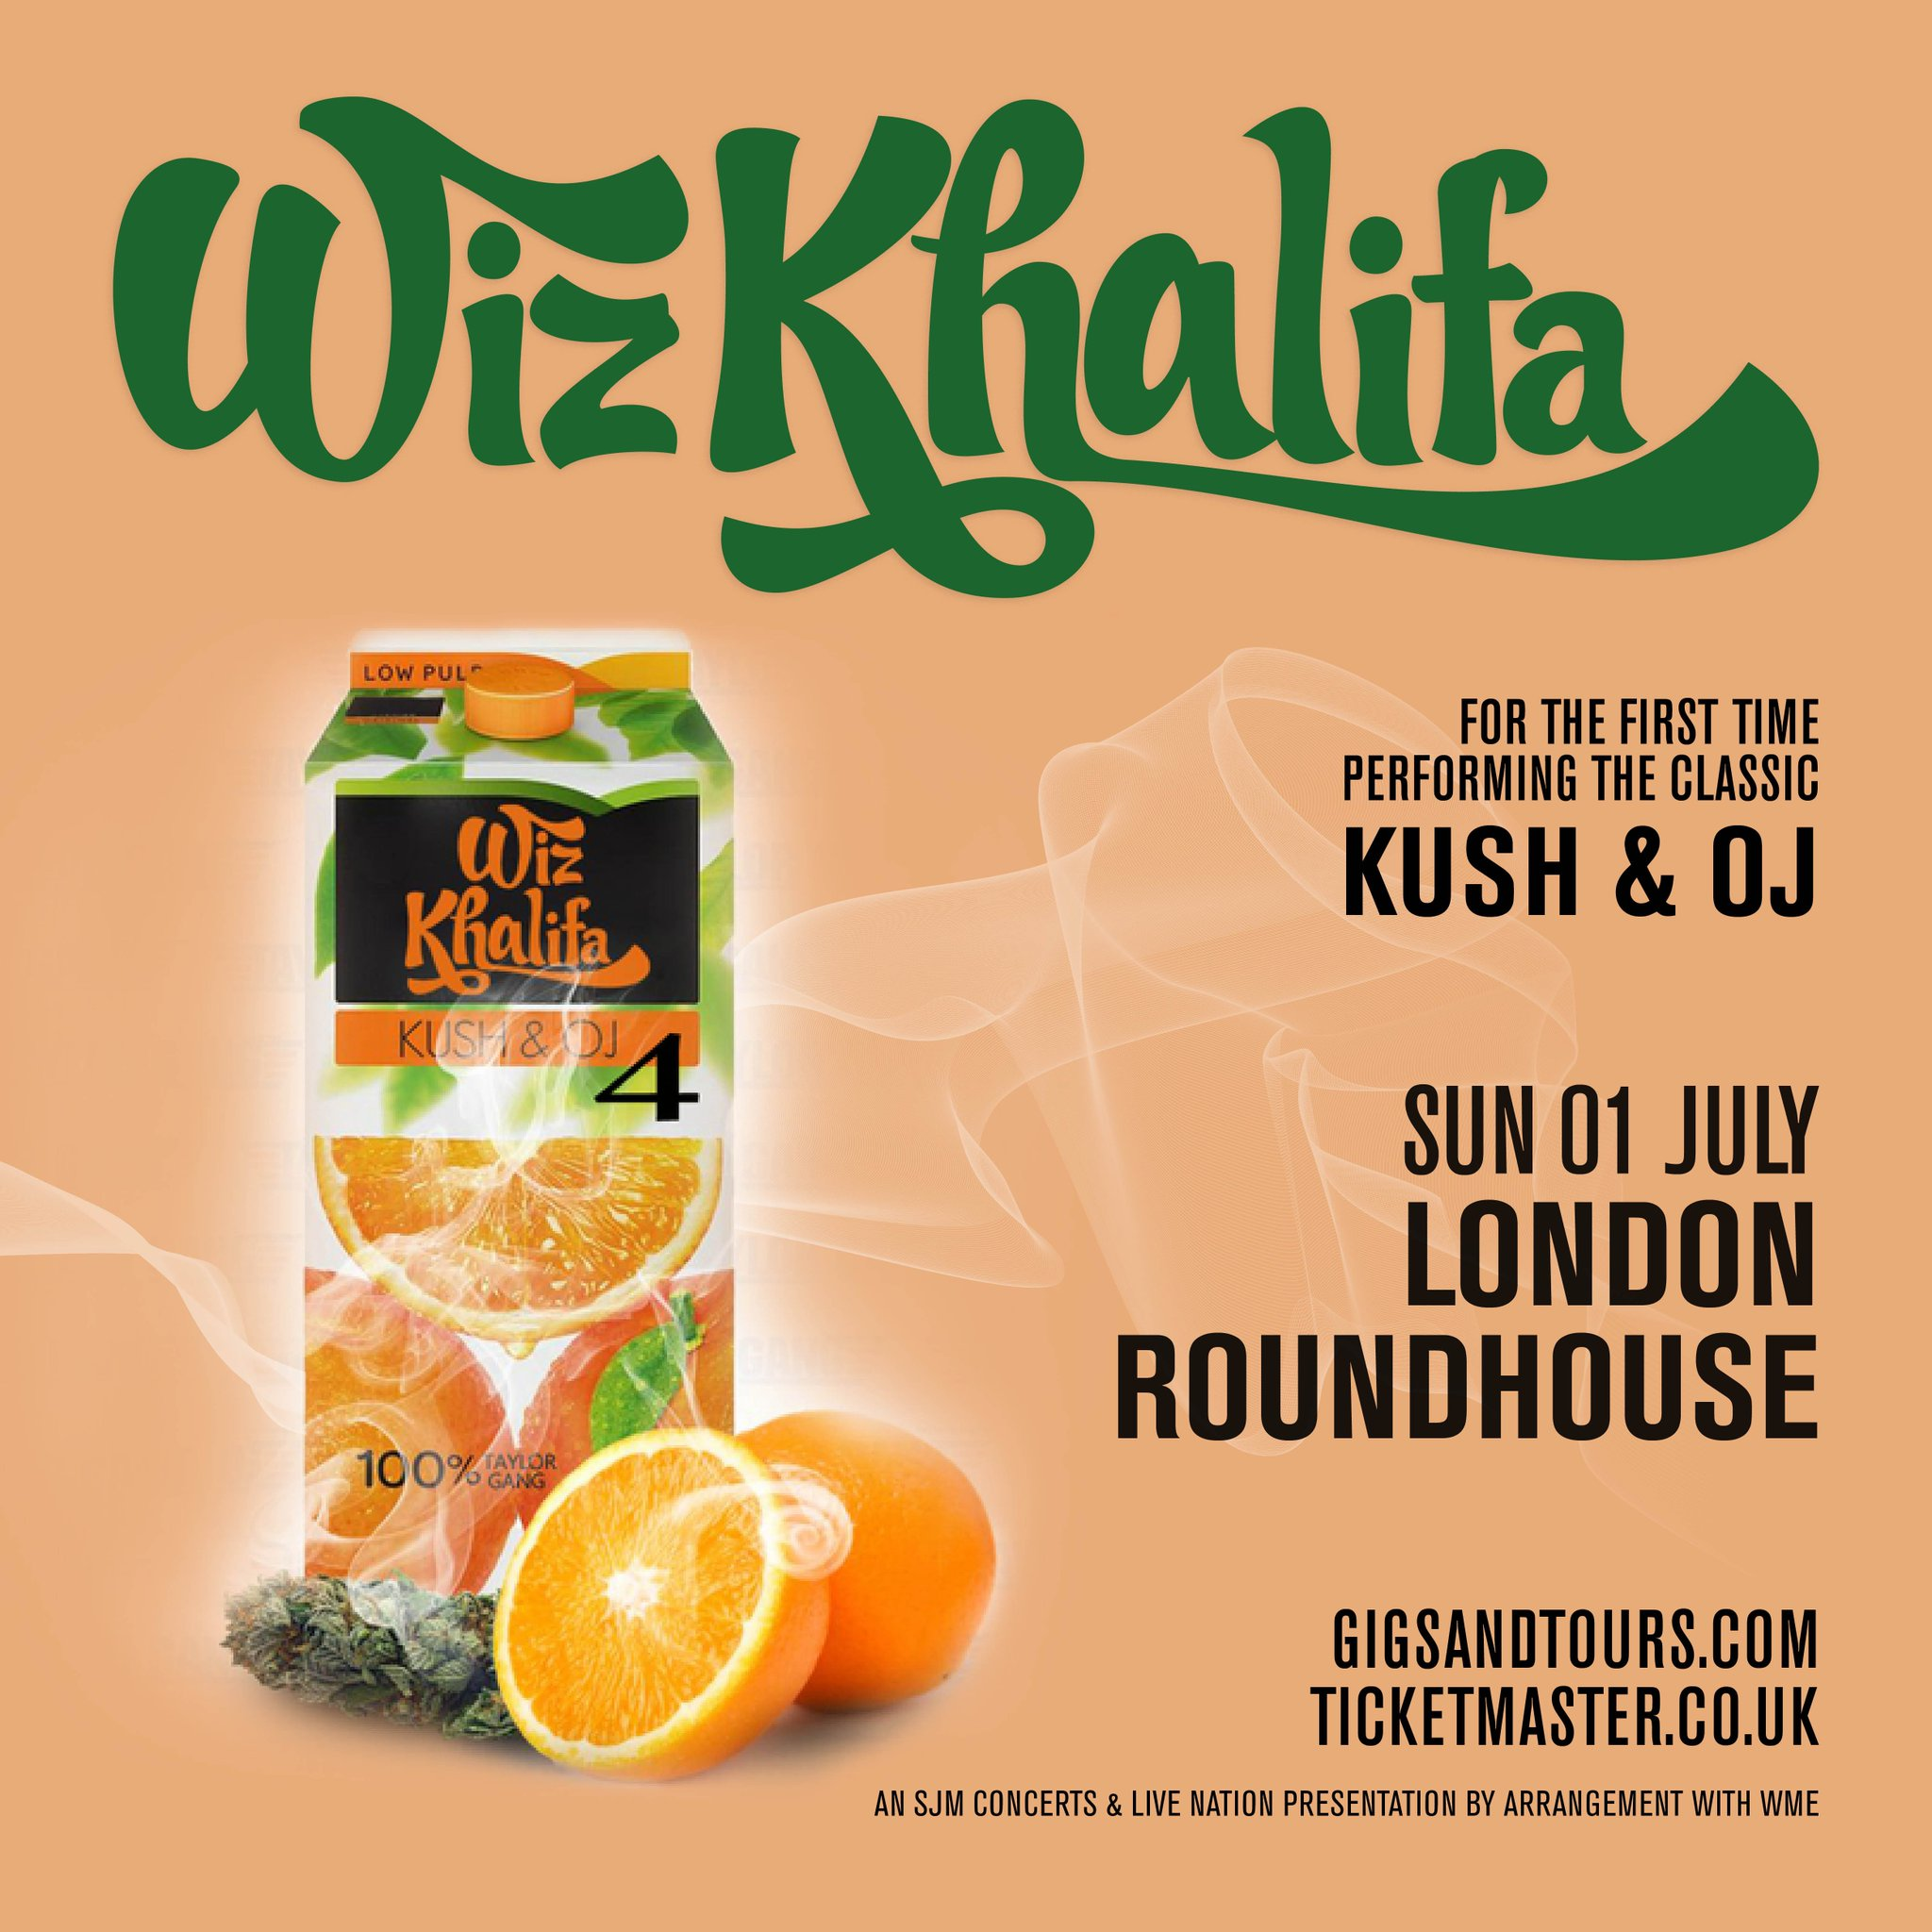 Kush & OJ live����July 1st at London Roundhouse. https://t.co/mvththdC6n https://t.co/SaNg340AKW